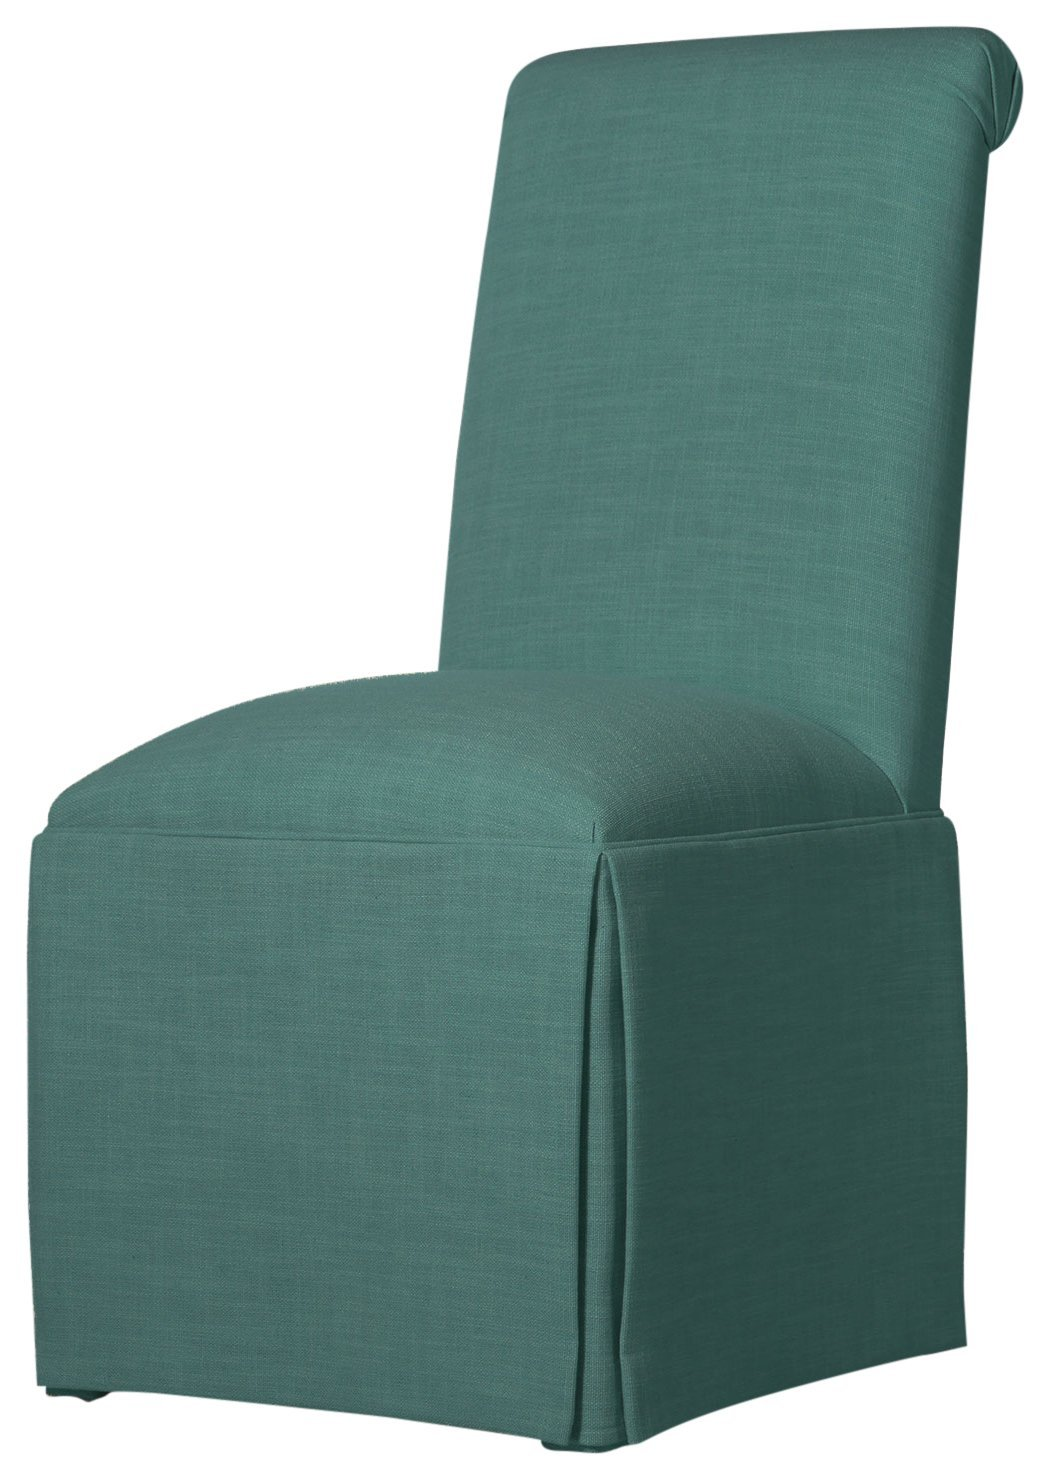 Parsons Chair Covers Cheap Skirted Chair Covers Find Skirted Chair Covers Deals On